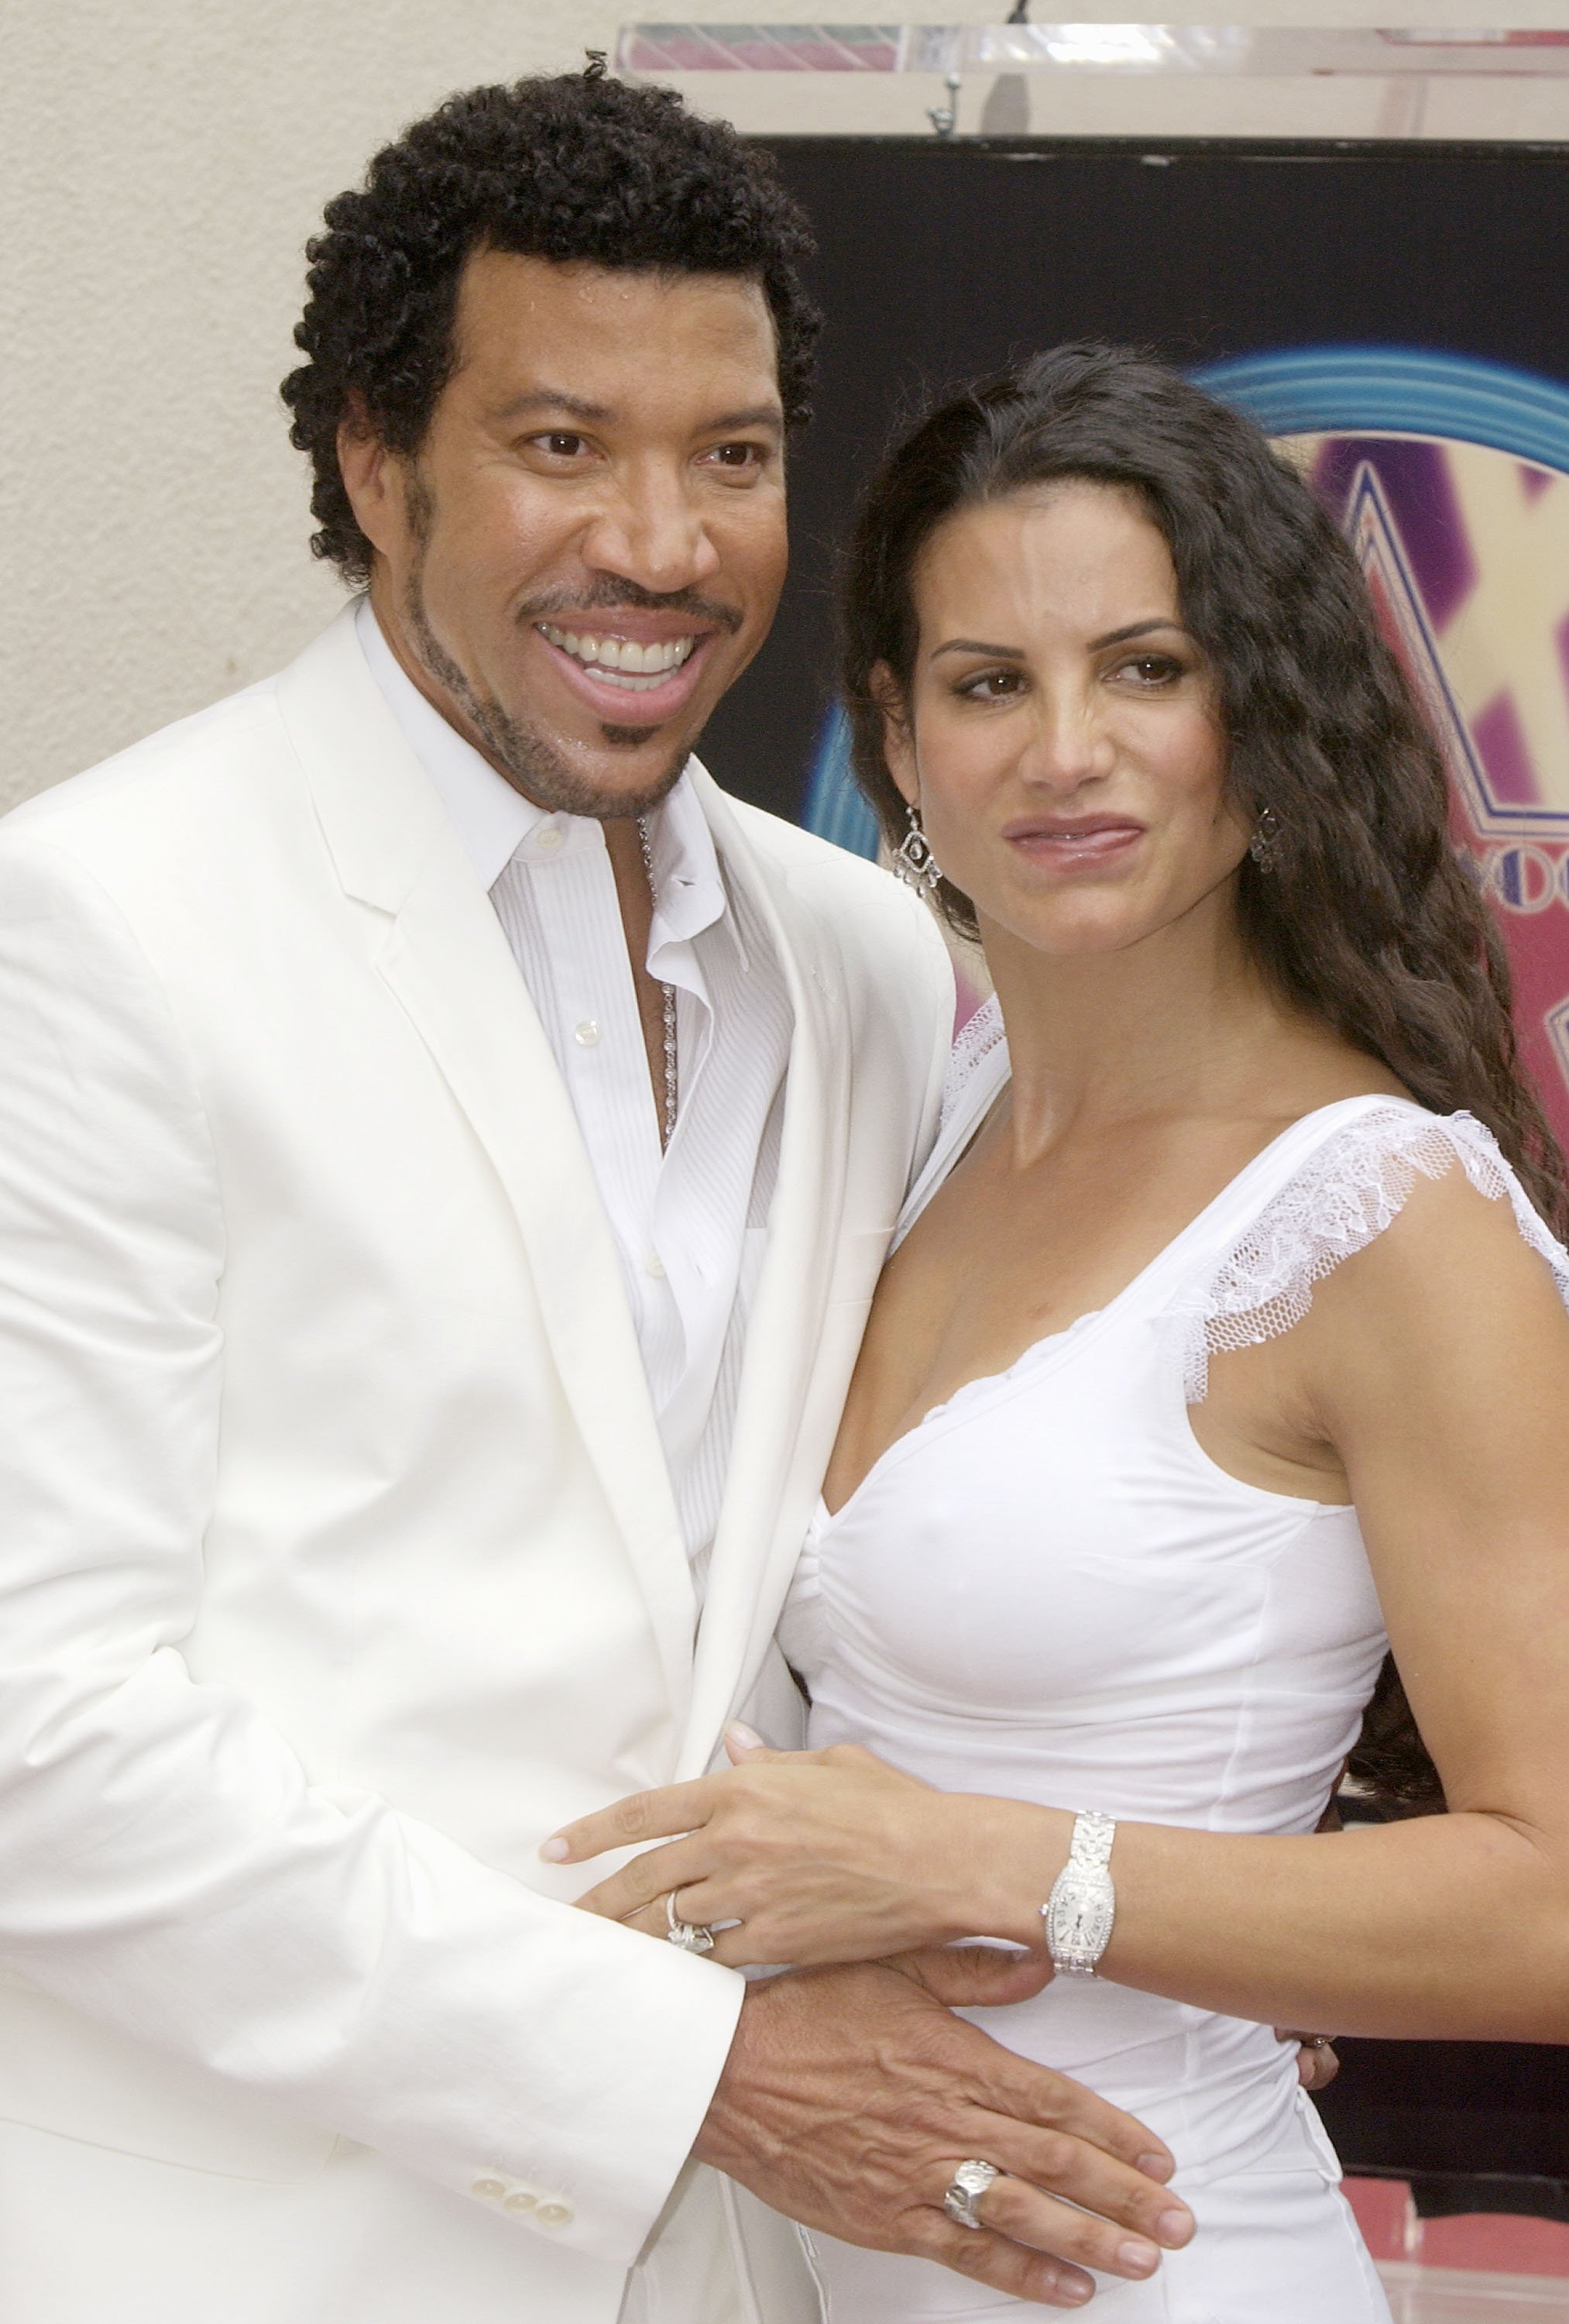 Lionel Richie with wife Diana attend a ceremony honoring Richie with a star on the Hollywood Walk of Fame June 20, 2003 in Hollywood, California | Photo: GettyImages